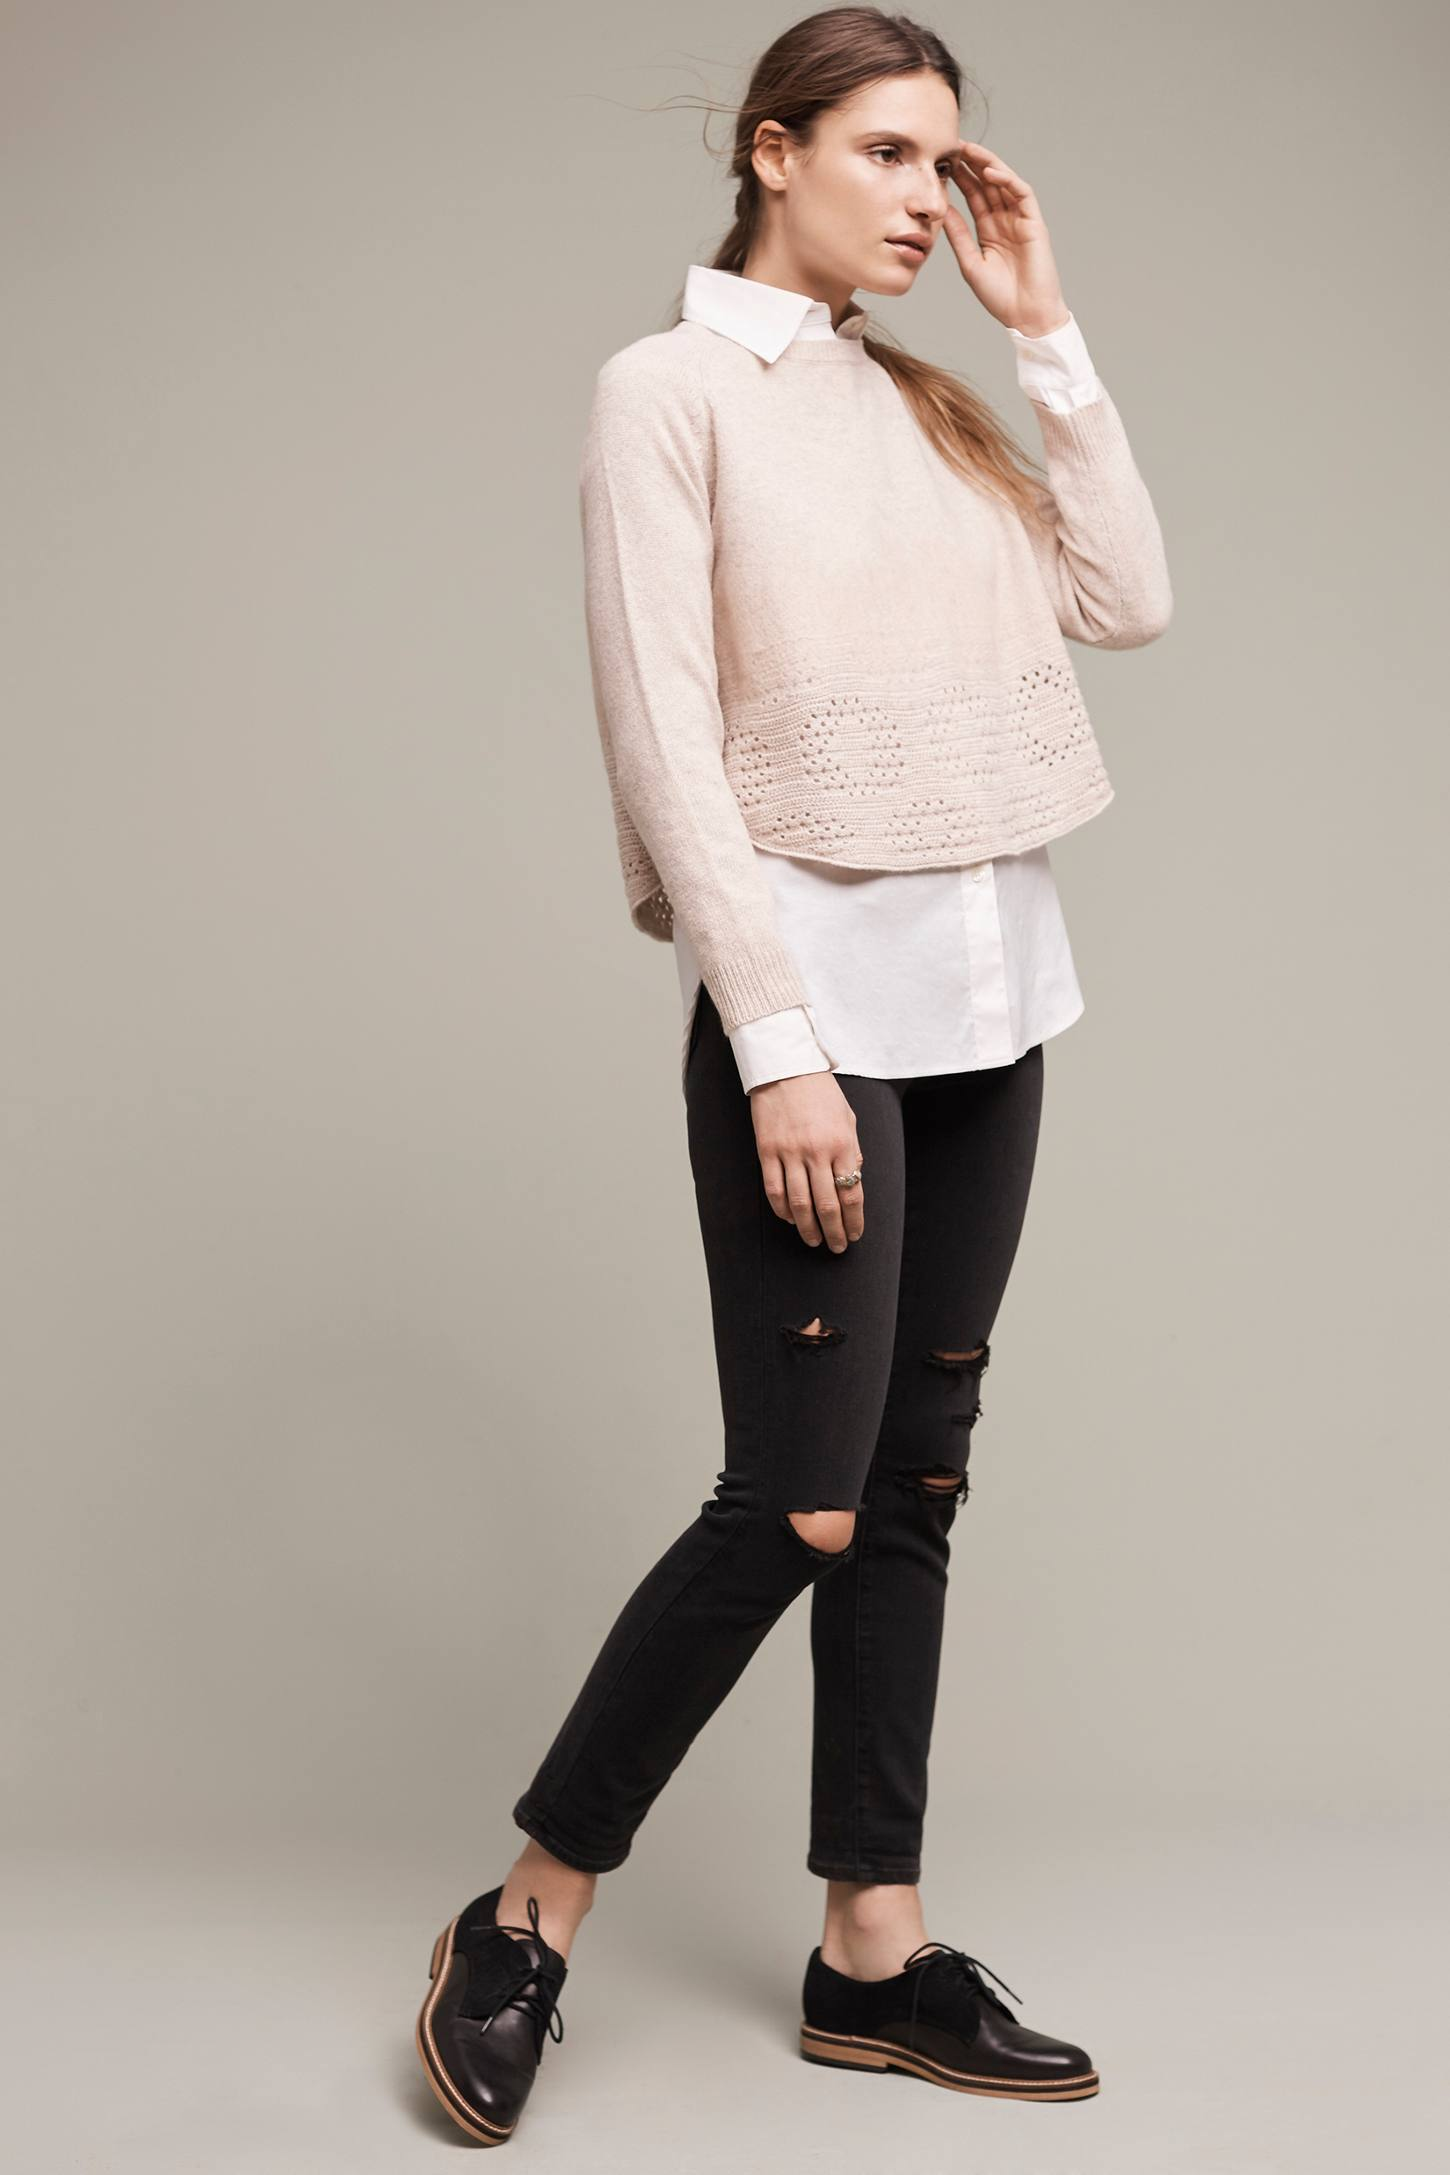 Slide View: 2: Cropped Pointelle Pullover